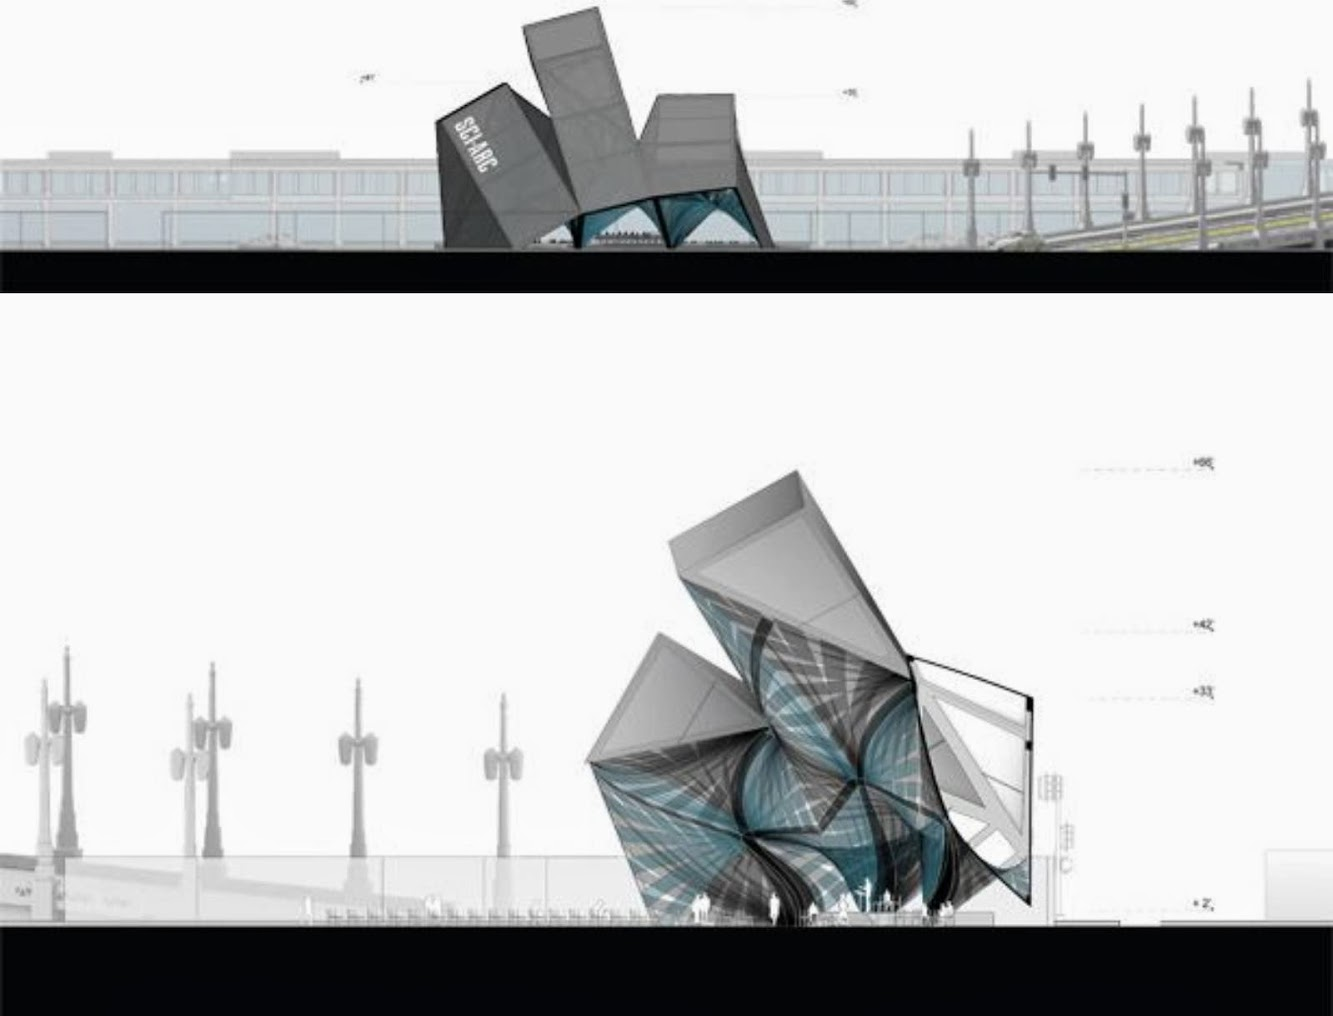 Sci Arc by P A T T E